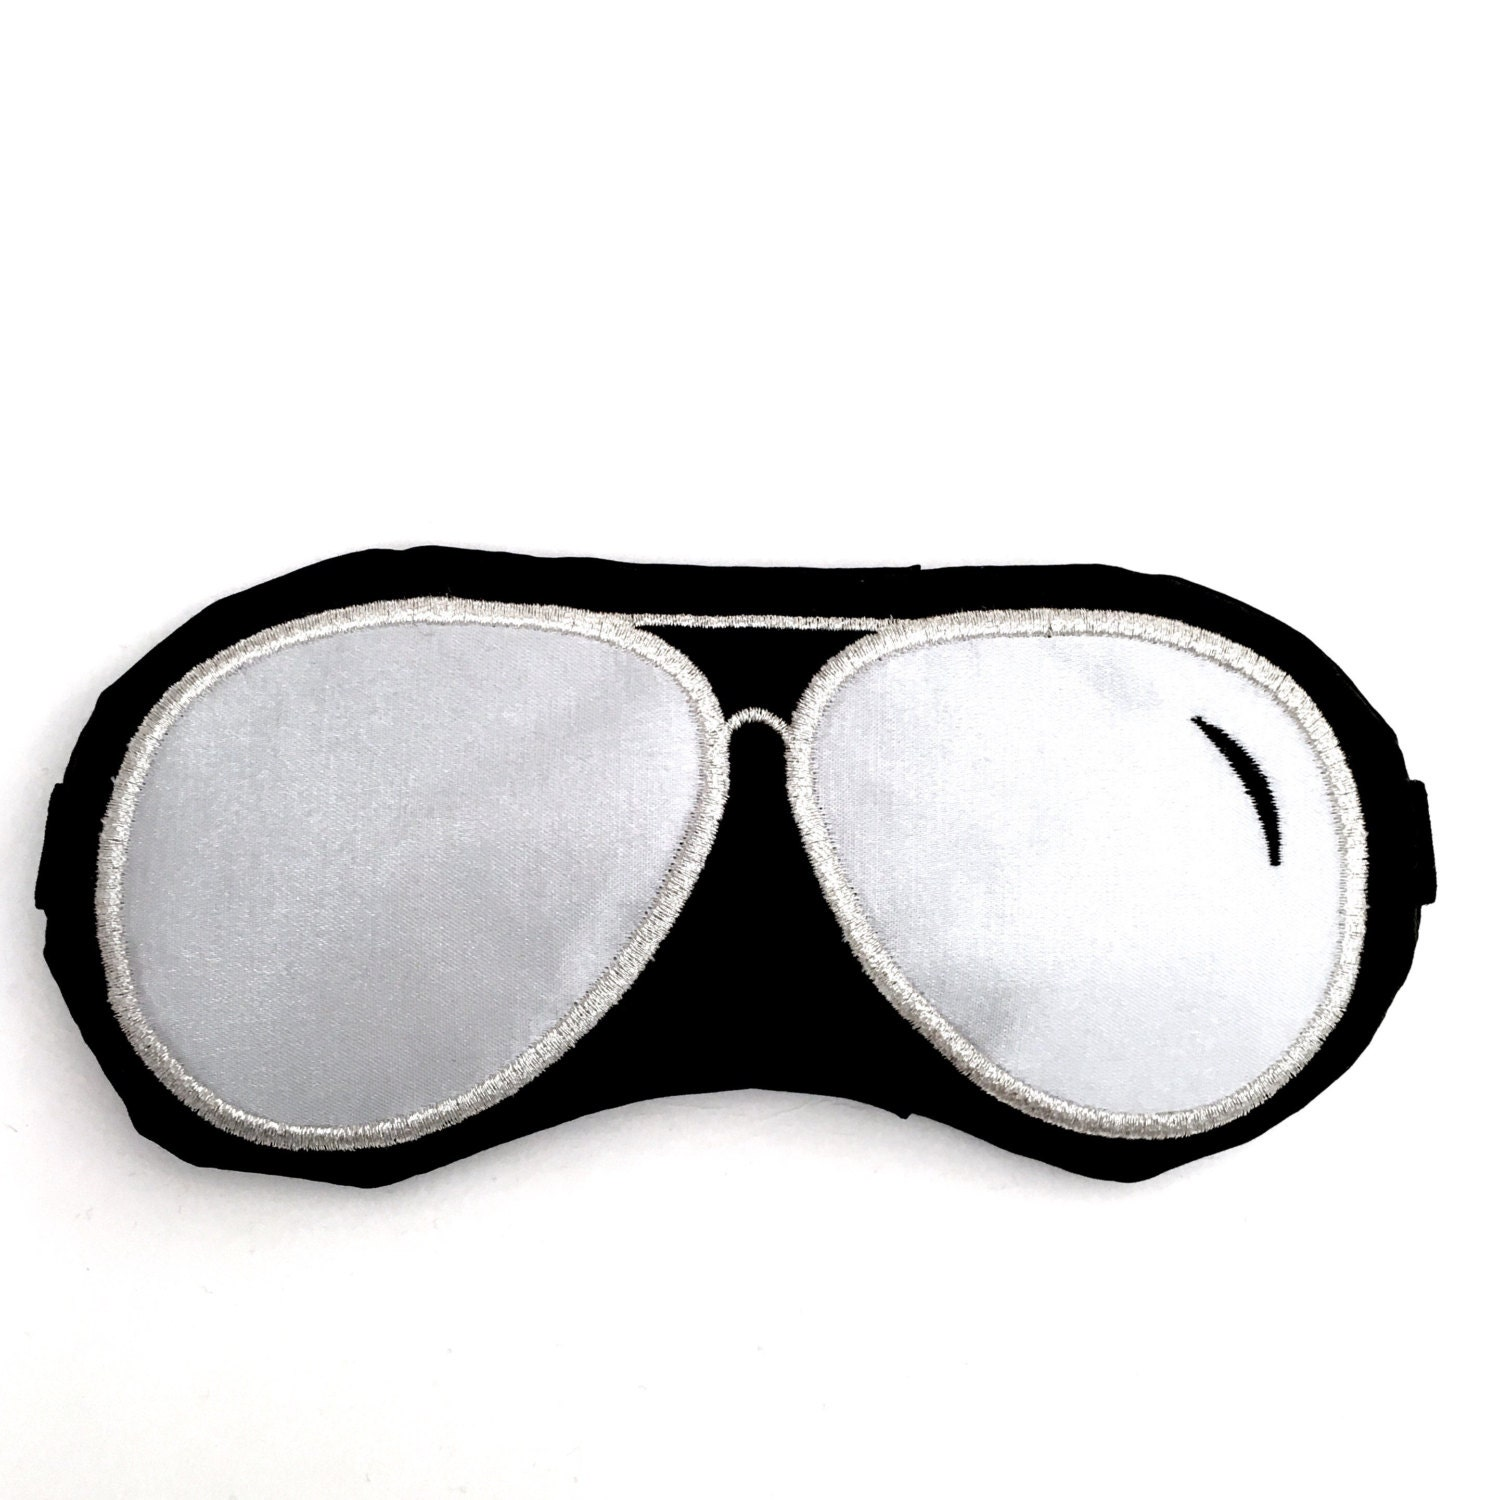 Sleep Mask Eye Mask for Men & Women - Homello Premium 3D Contoured Eye Shades Sleeping Mask with Innovative Domed Shape for Complete Darkness and Free Movement of .